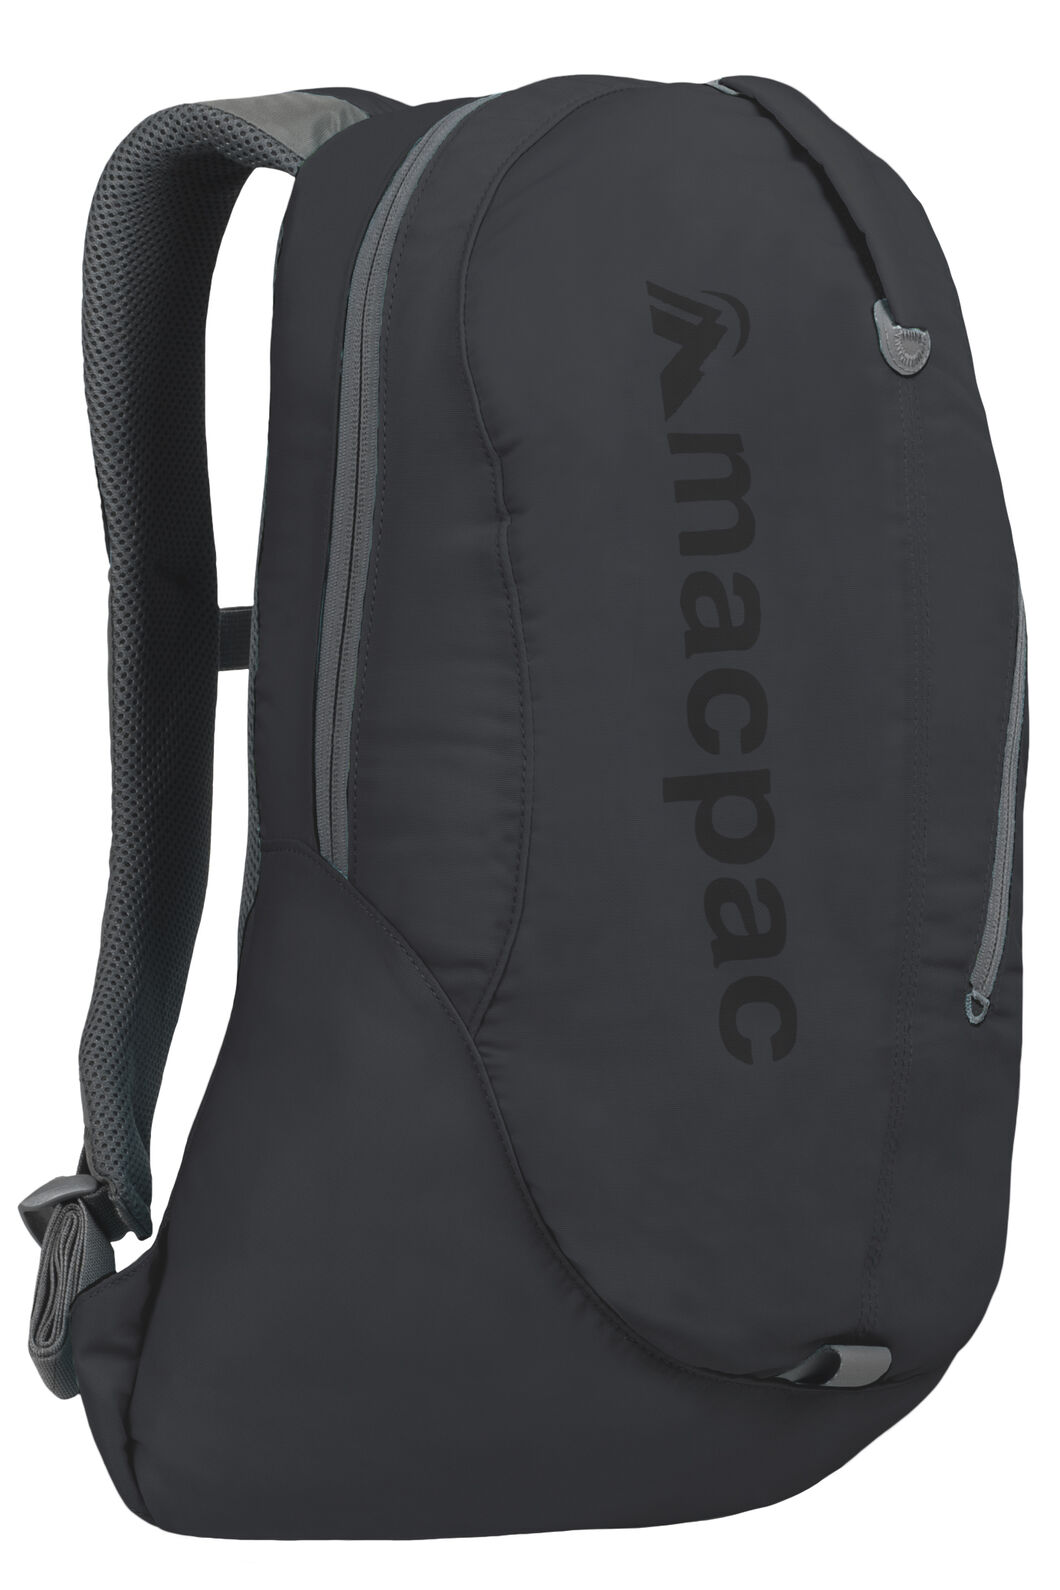 Kahuna 18L Backpack, Forged Iron/Black, hi-res